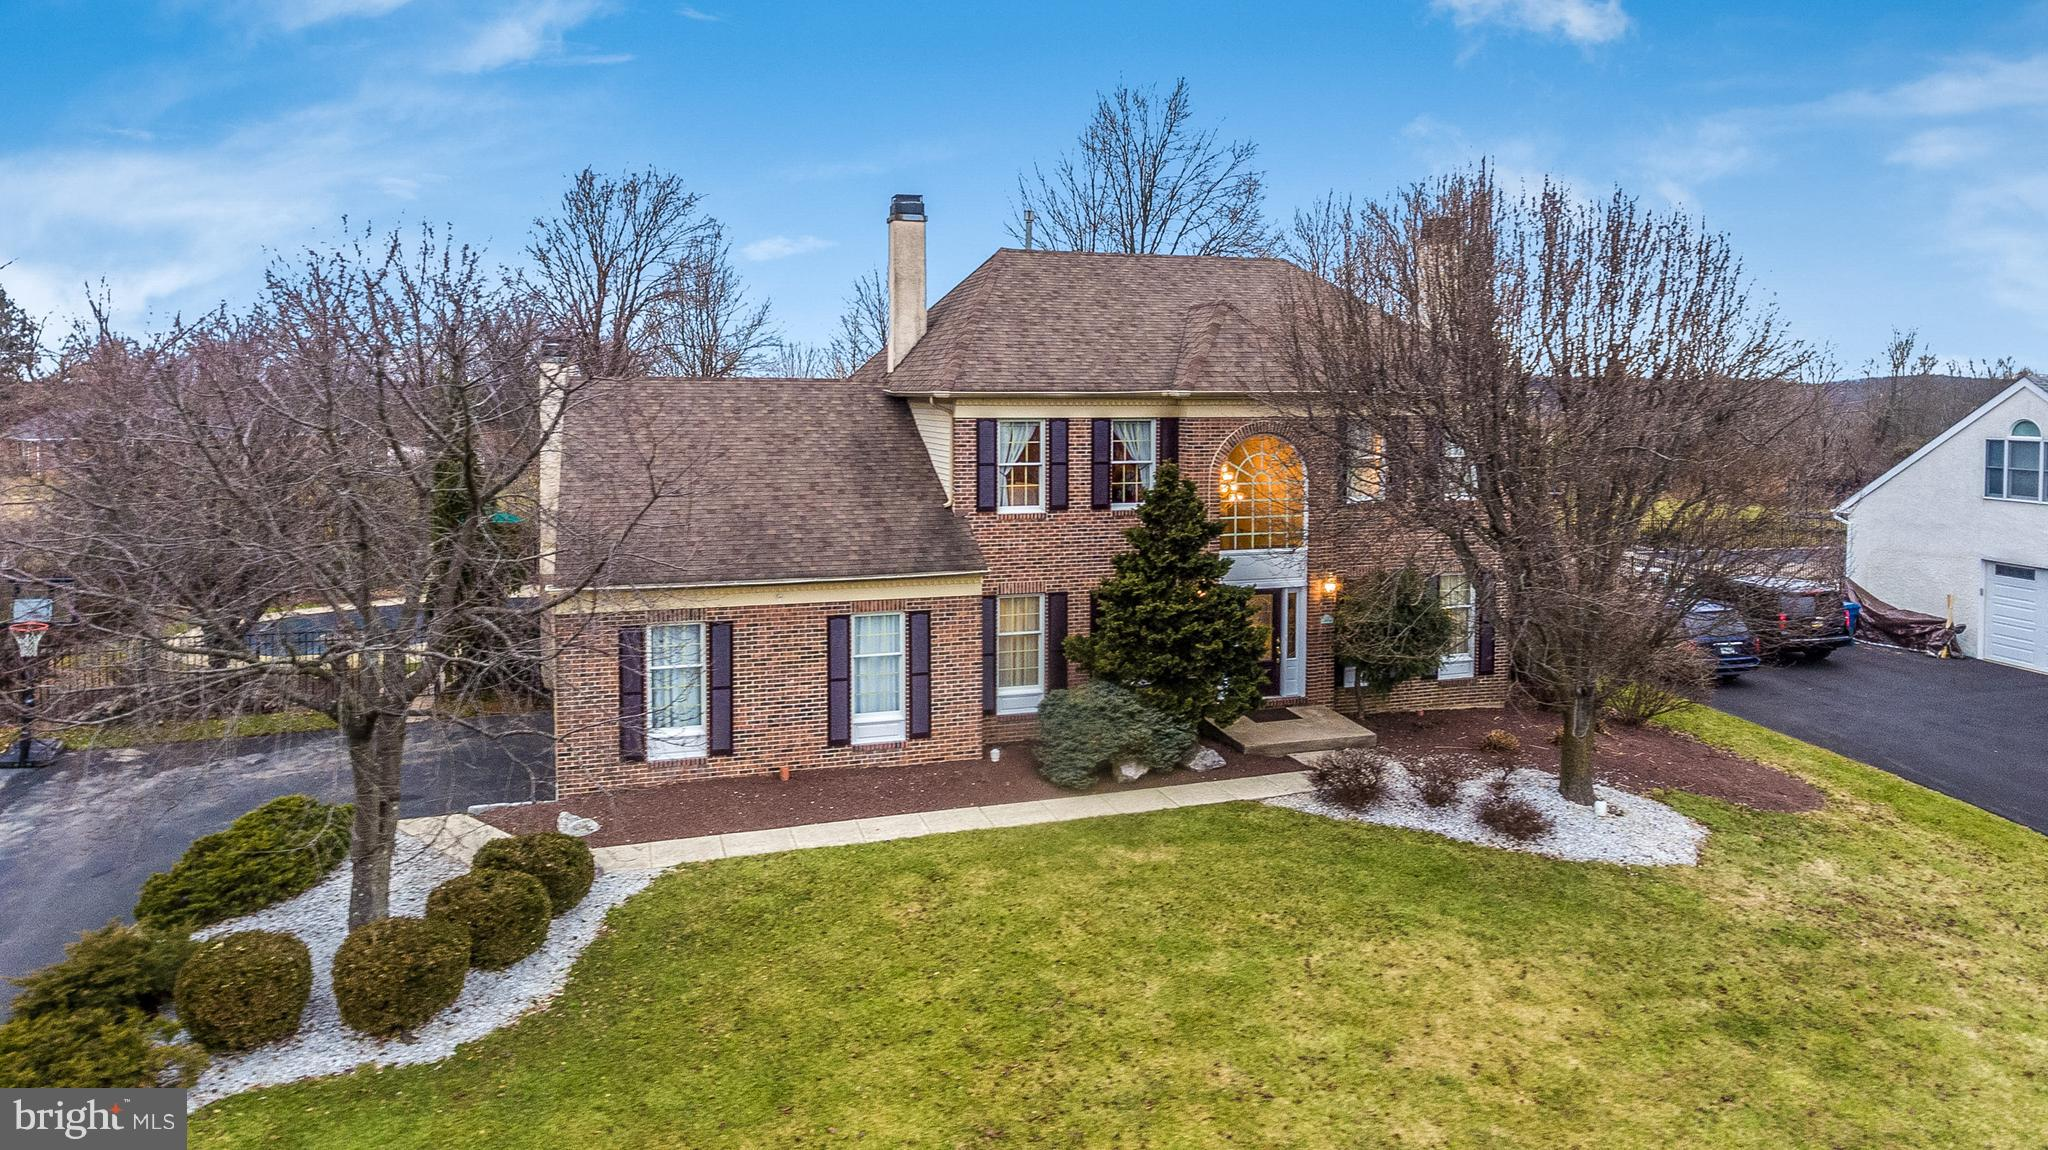 2558 CANDYTUFT DRIVE, JAMISON, PA 18929